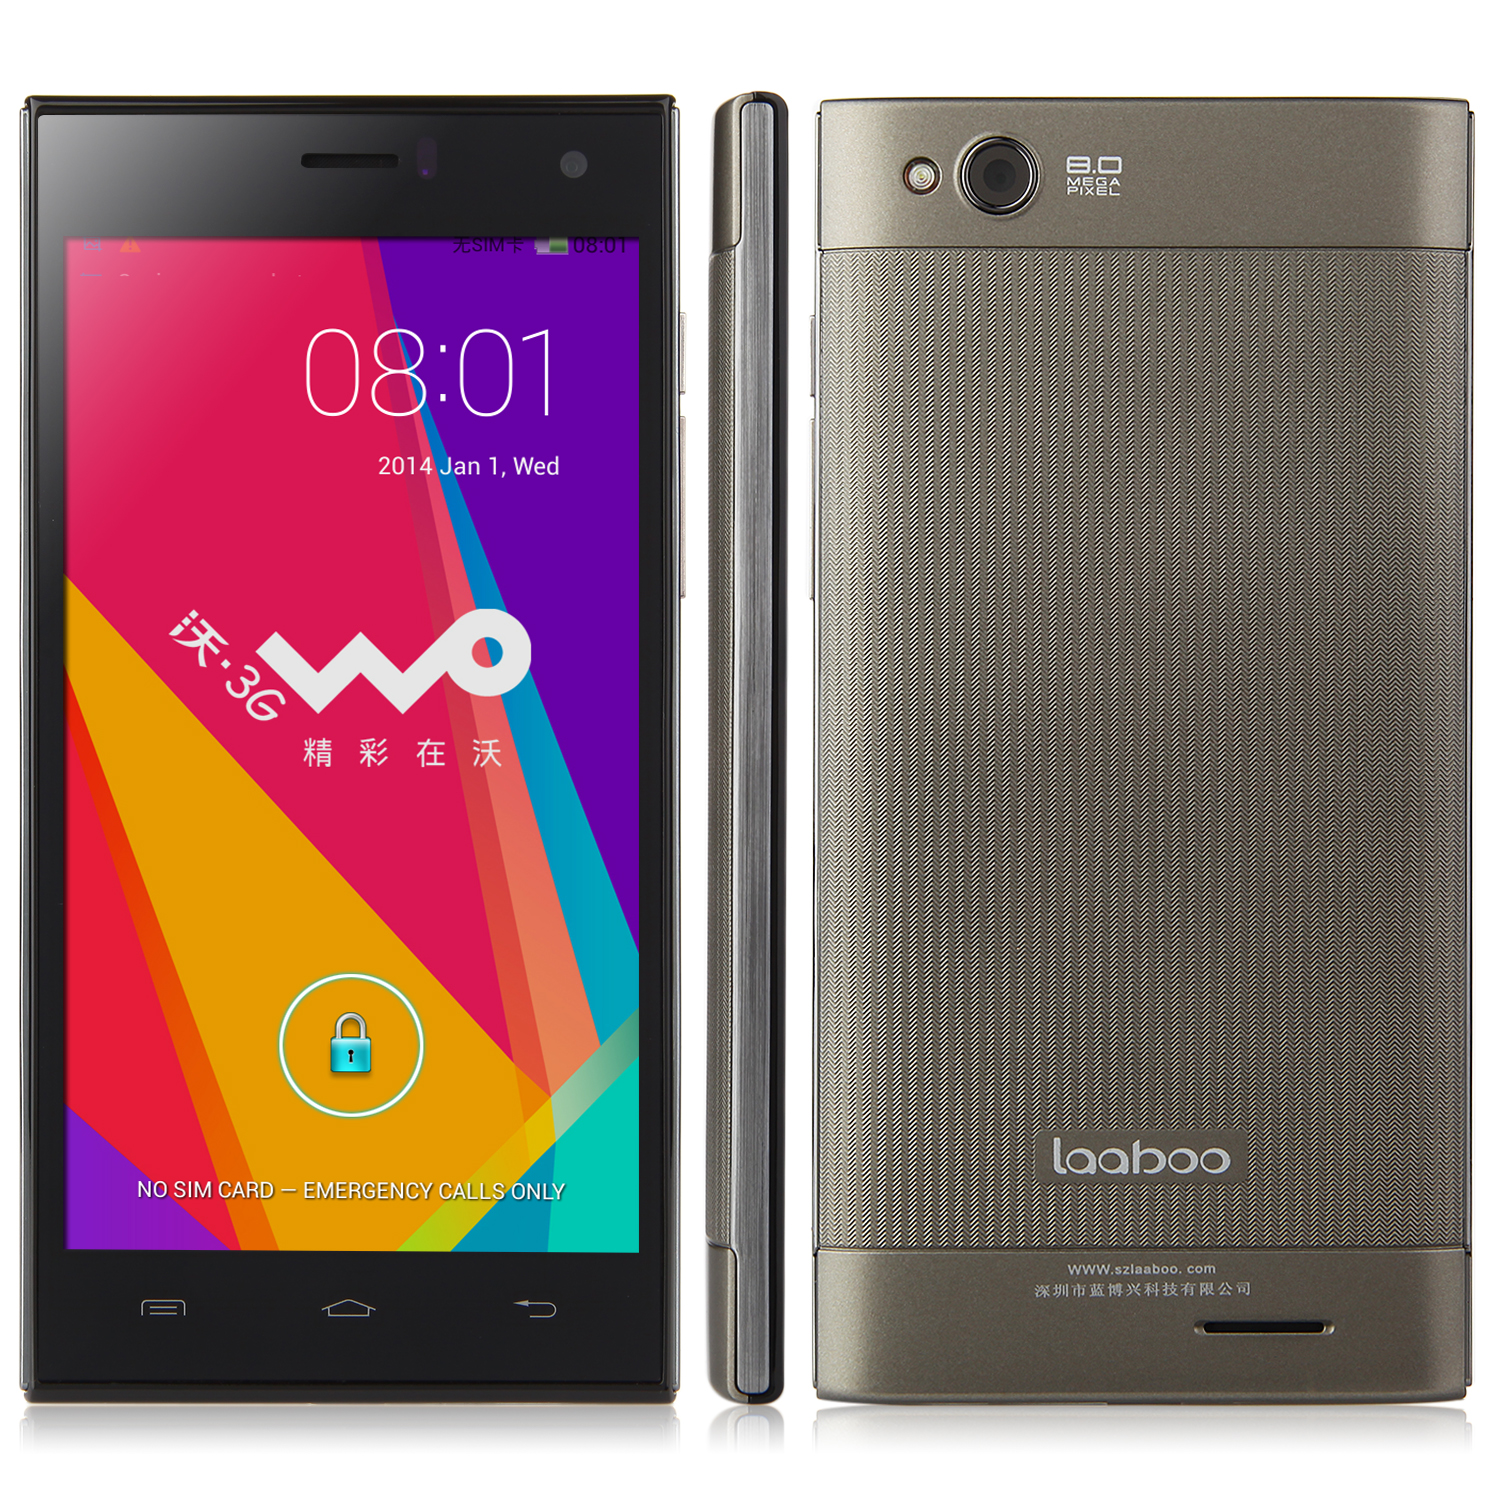 Laaboo W01 Smartphone MTK6582 Quad Core 1.3GHz 1GB 8GB 5.0 Inch IPS Screen 8.0MP Camera